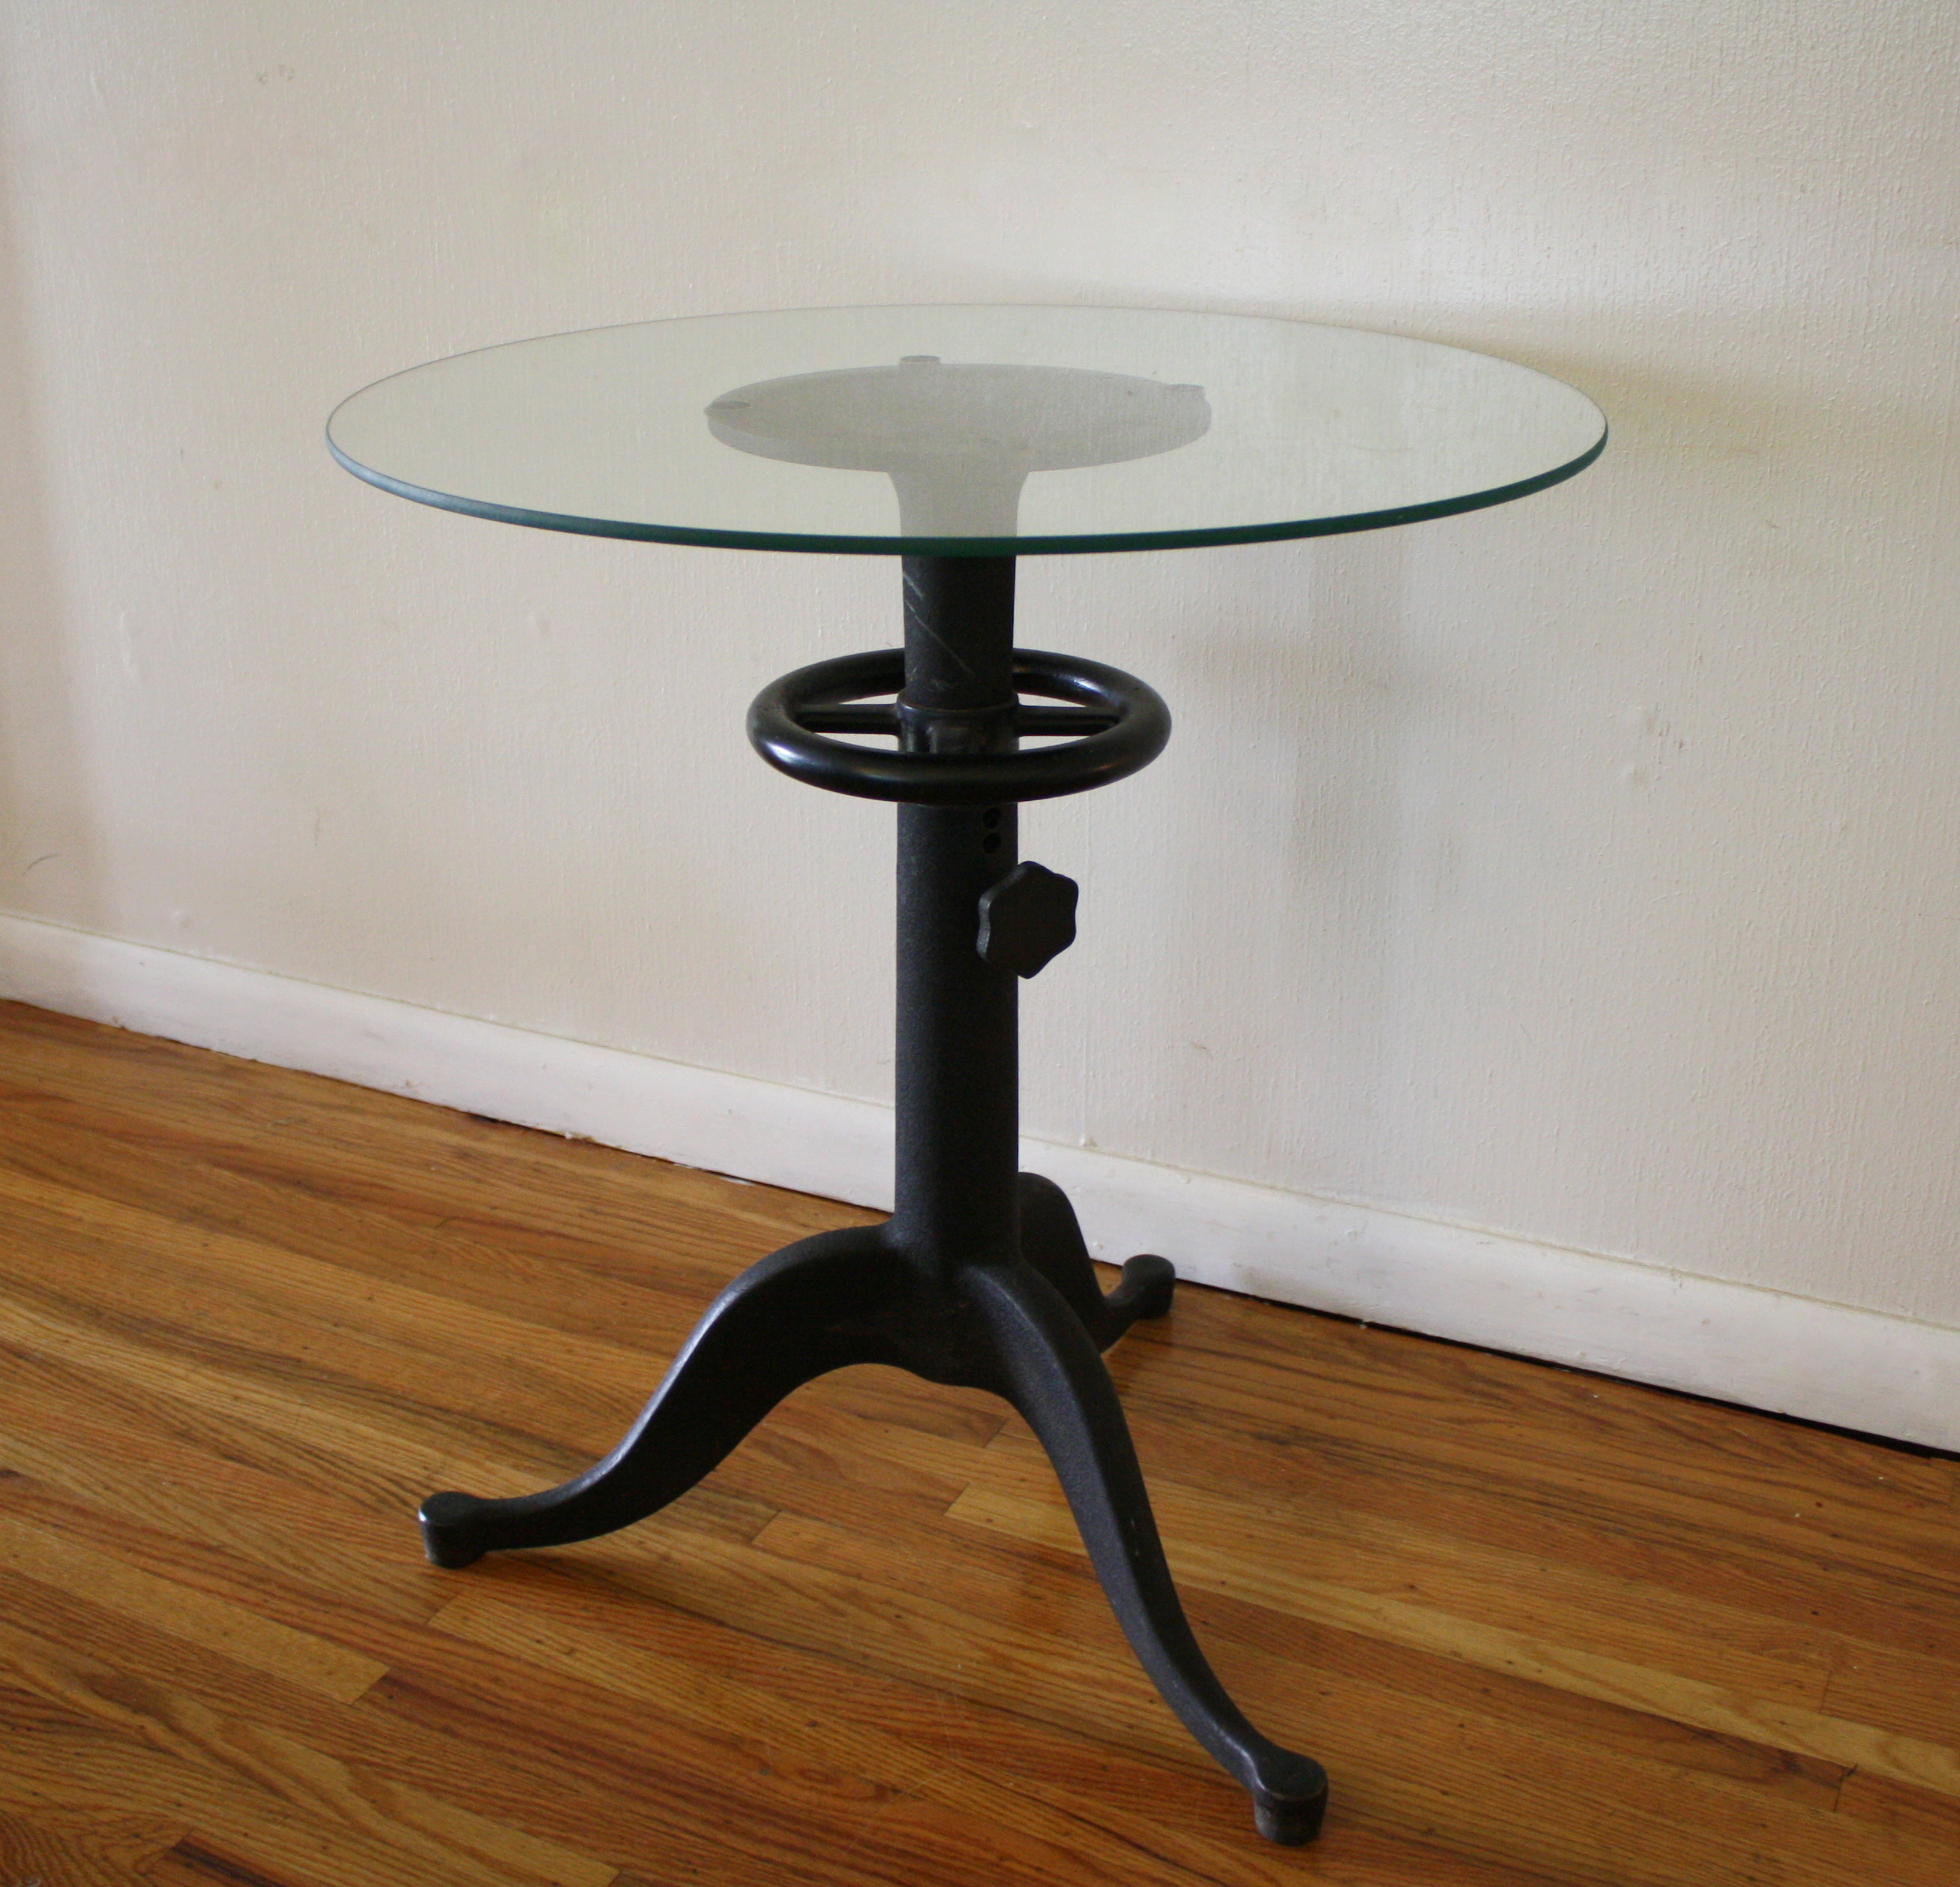 Antique Cast Iron Table with Glass Top  Steampunk Chic